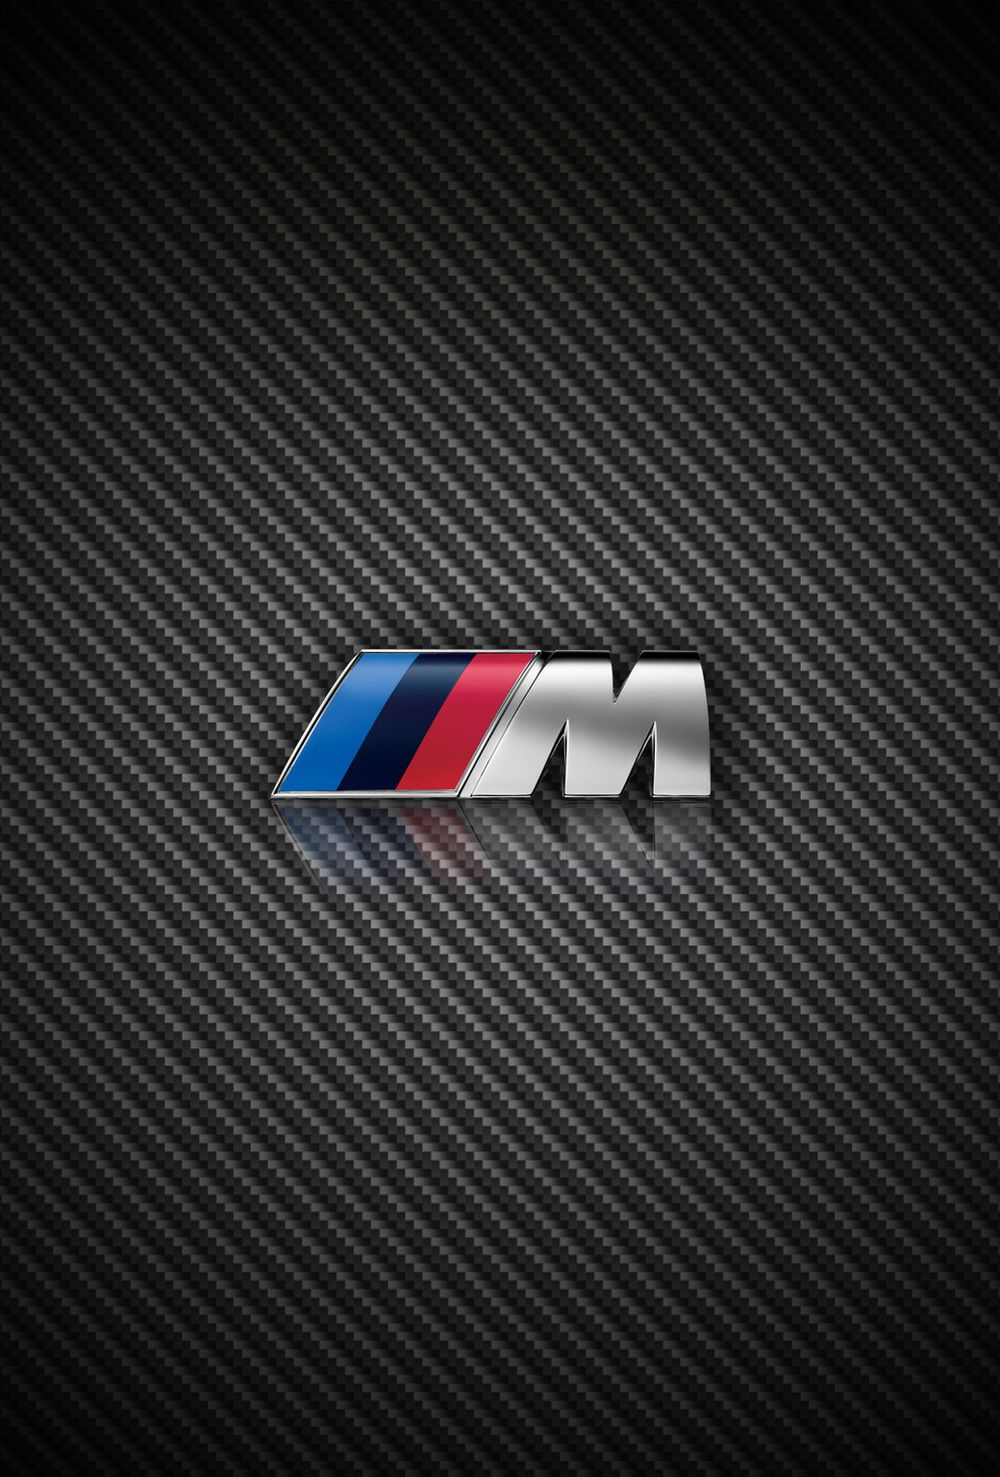 Logos for bmw m logo wallpaper iphone 1000x1477